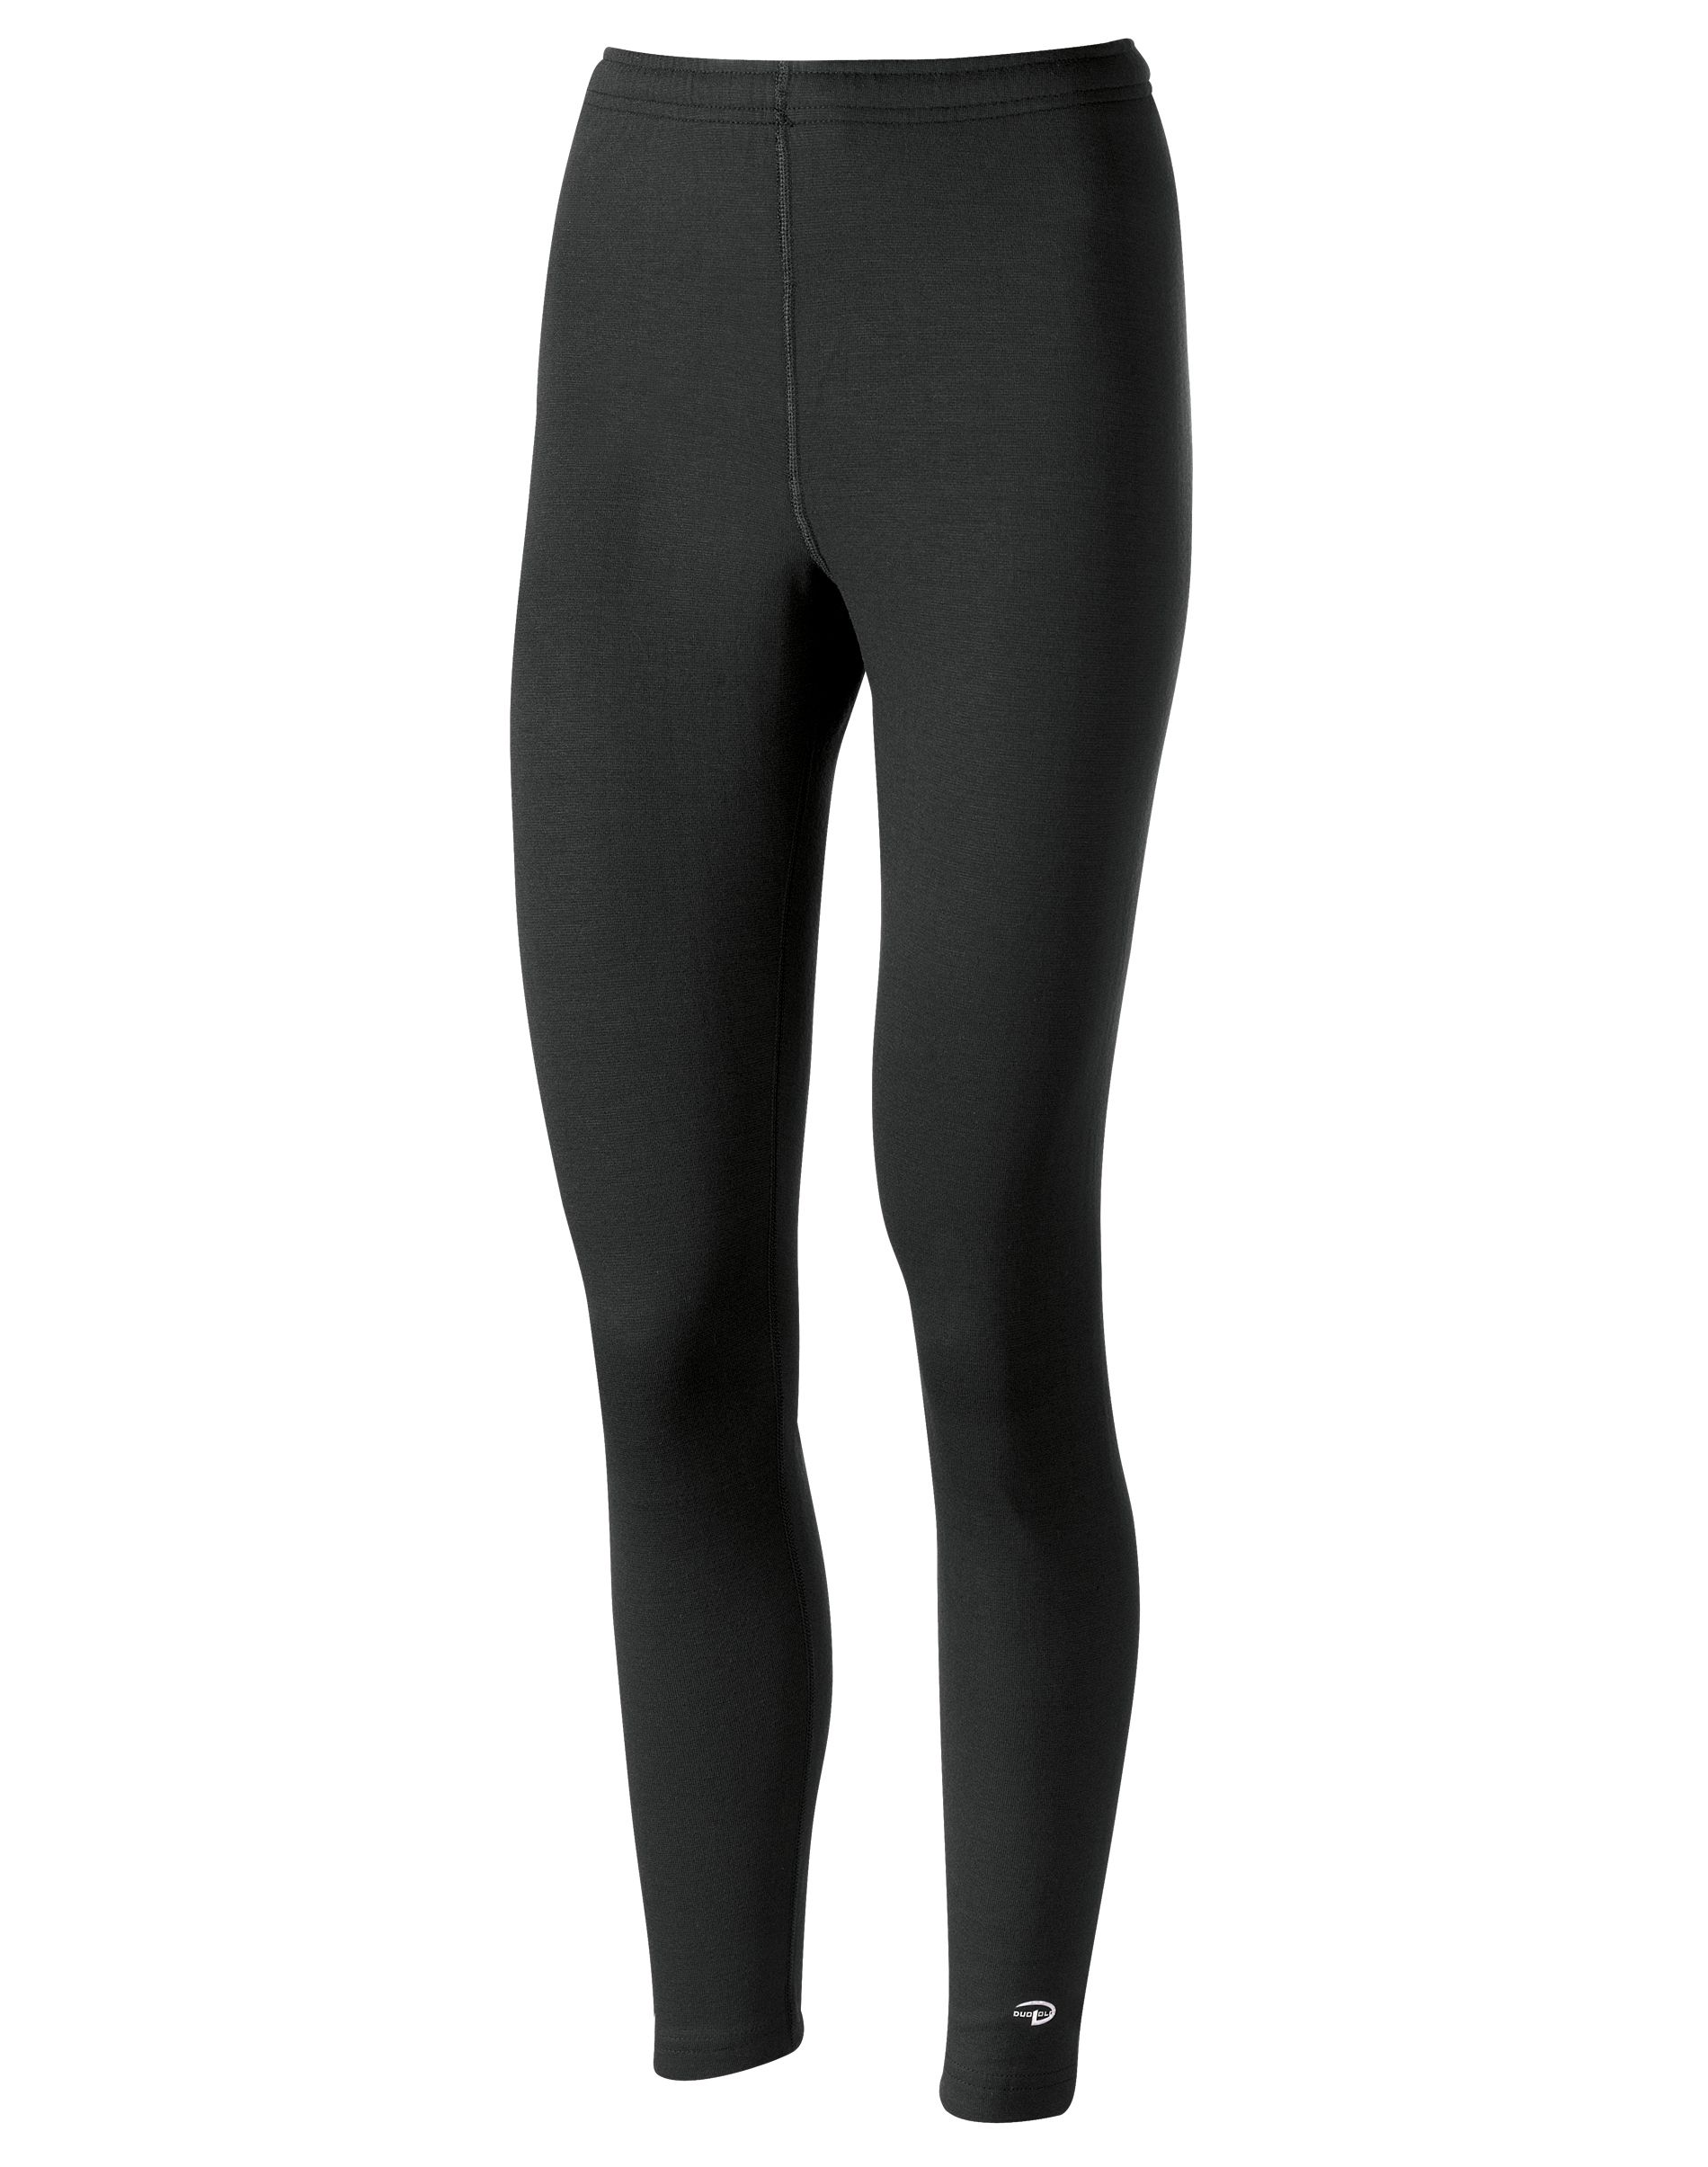 Duofold by Champion Varitherm Performance Women's Thermal Pants women Duofold by Champion